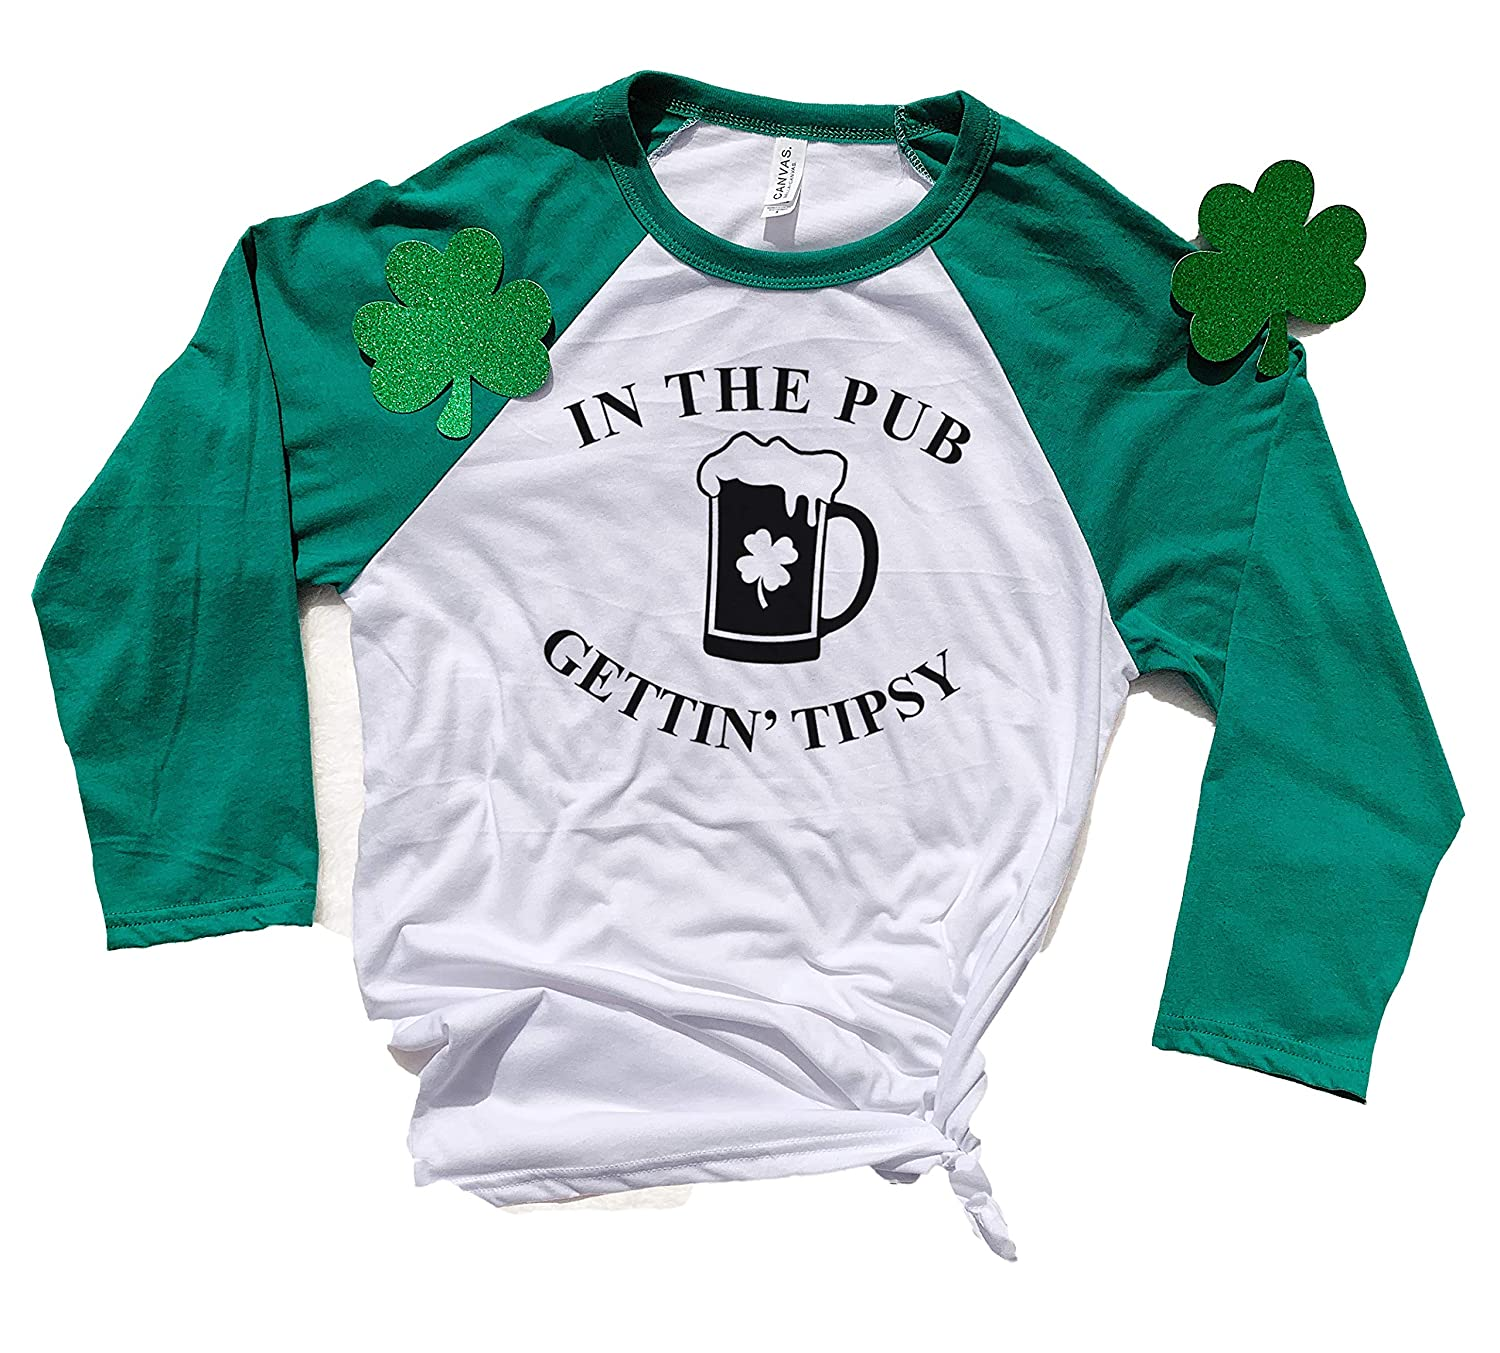 4461cf5a St Patricks Raglan, Long Sleeve Shirt, Cute St Patricks Day Shirt Women, St  Paddys T Shirts Women, St Patricks Drinking T Shirt, Green Beer Shirt, ...